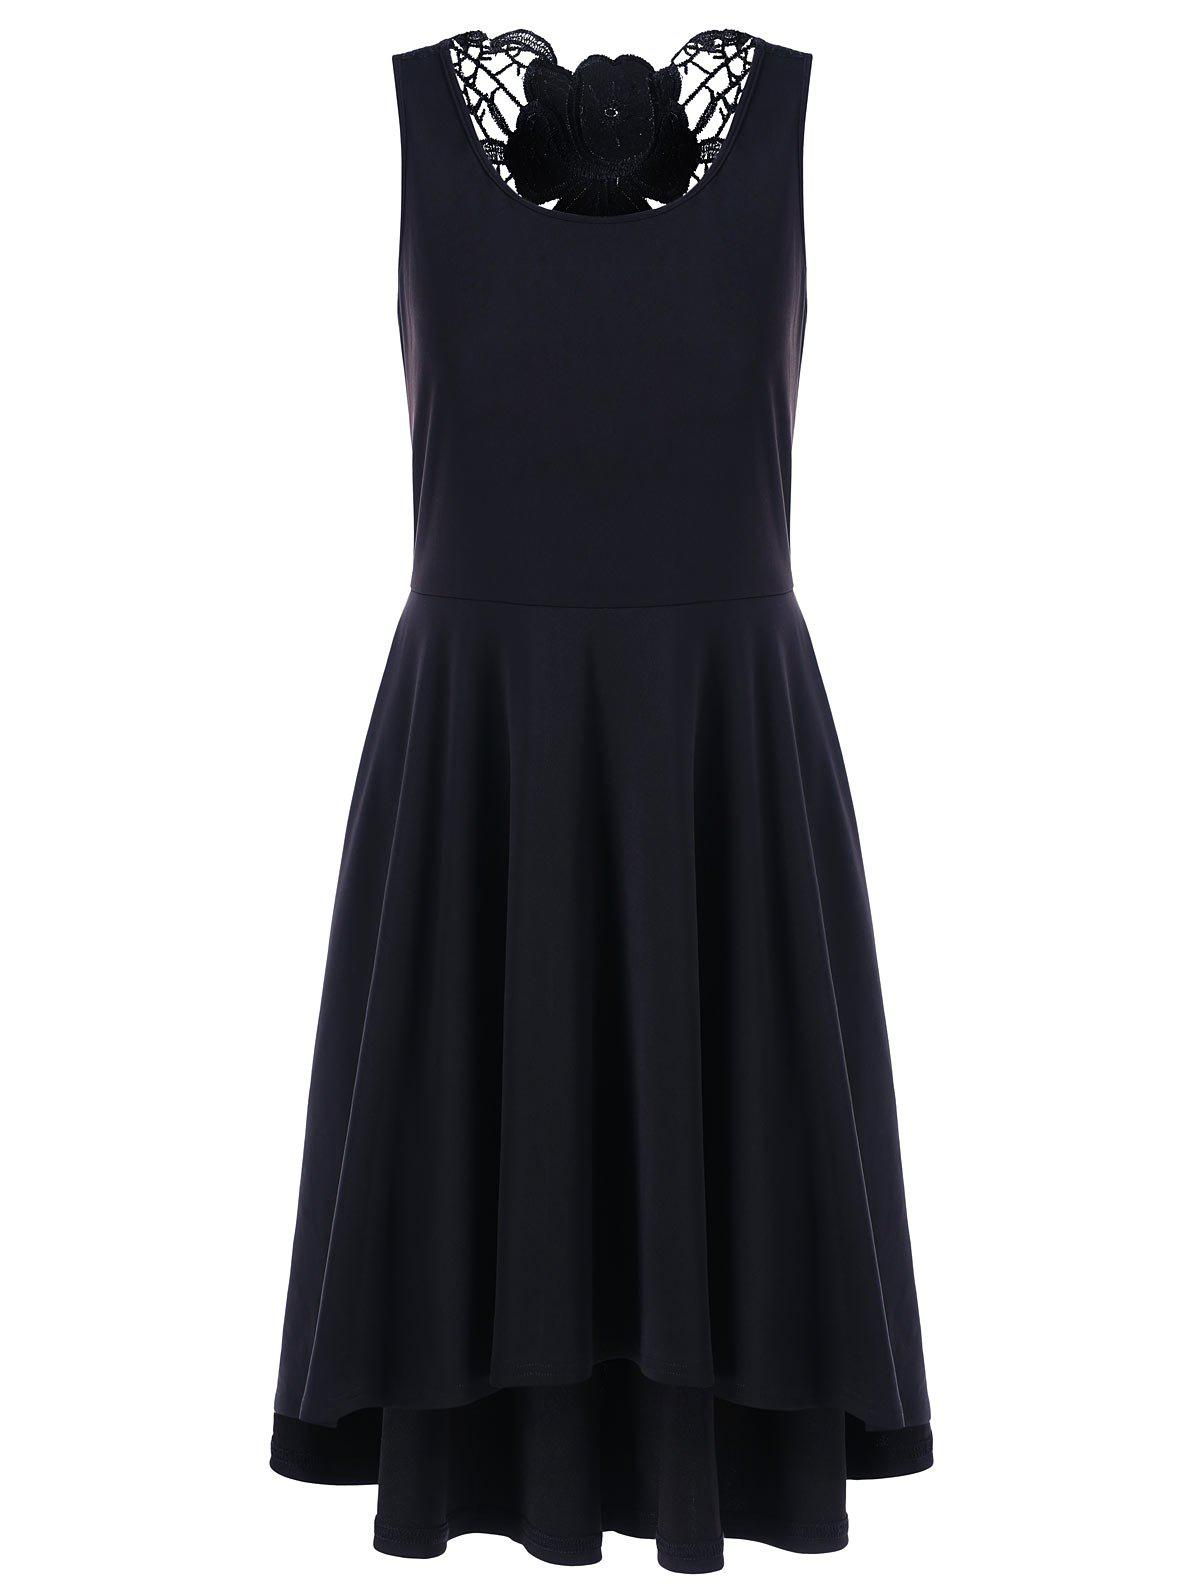 Lace Trim High Low Hem Dress - Noir M